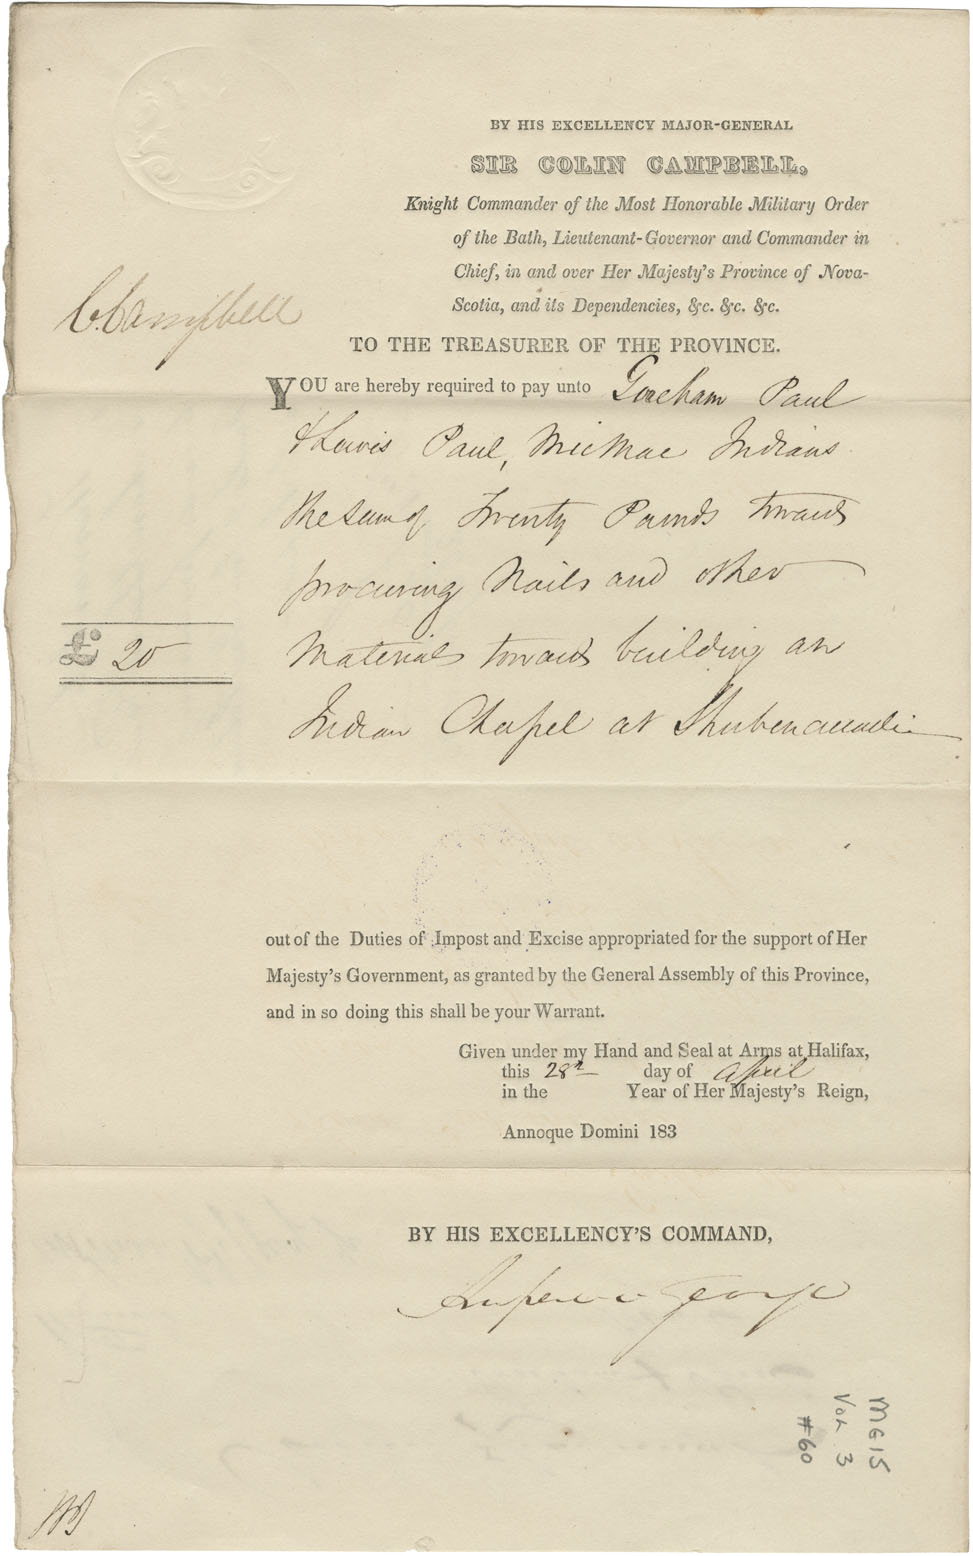 Warrant from Sir Colin Campbell to Graham Paul for £20-0-0 for building a chapel at Shubenacadie.